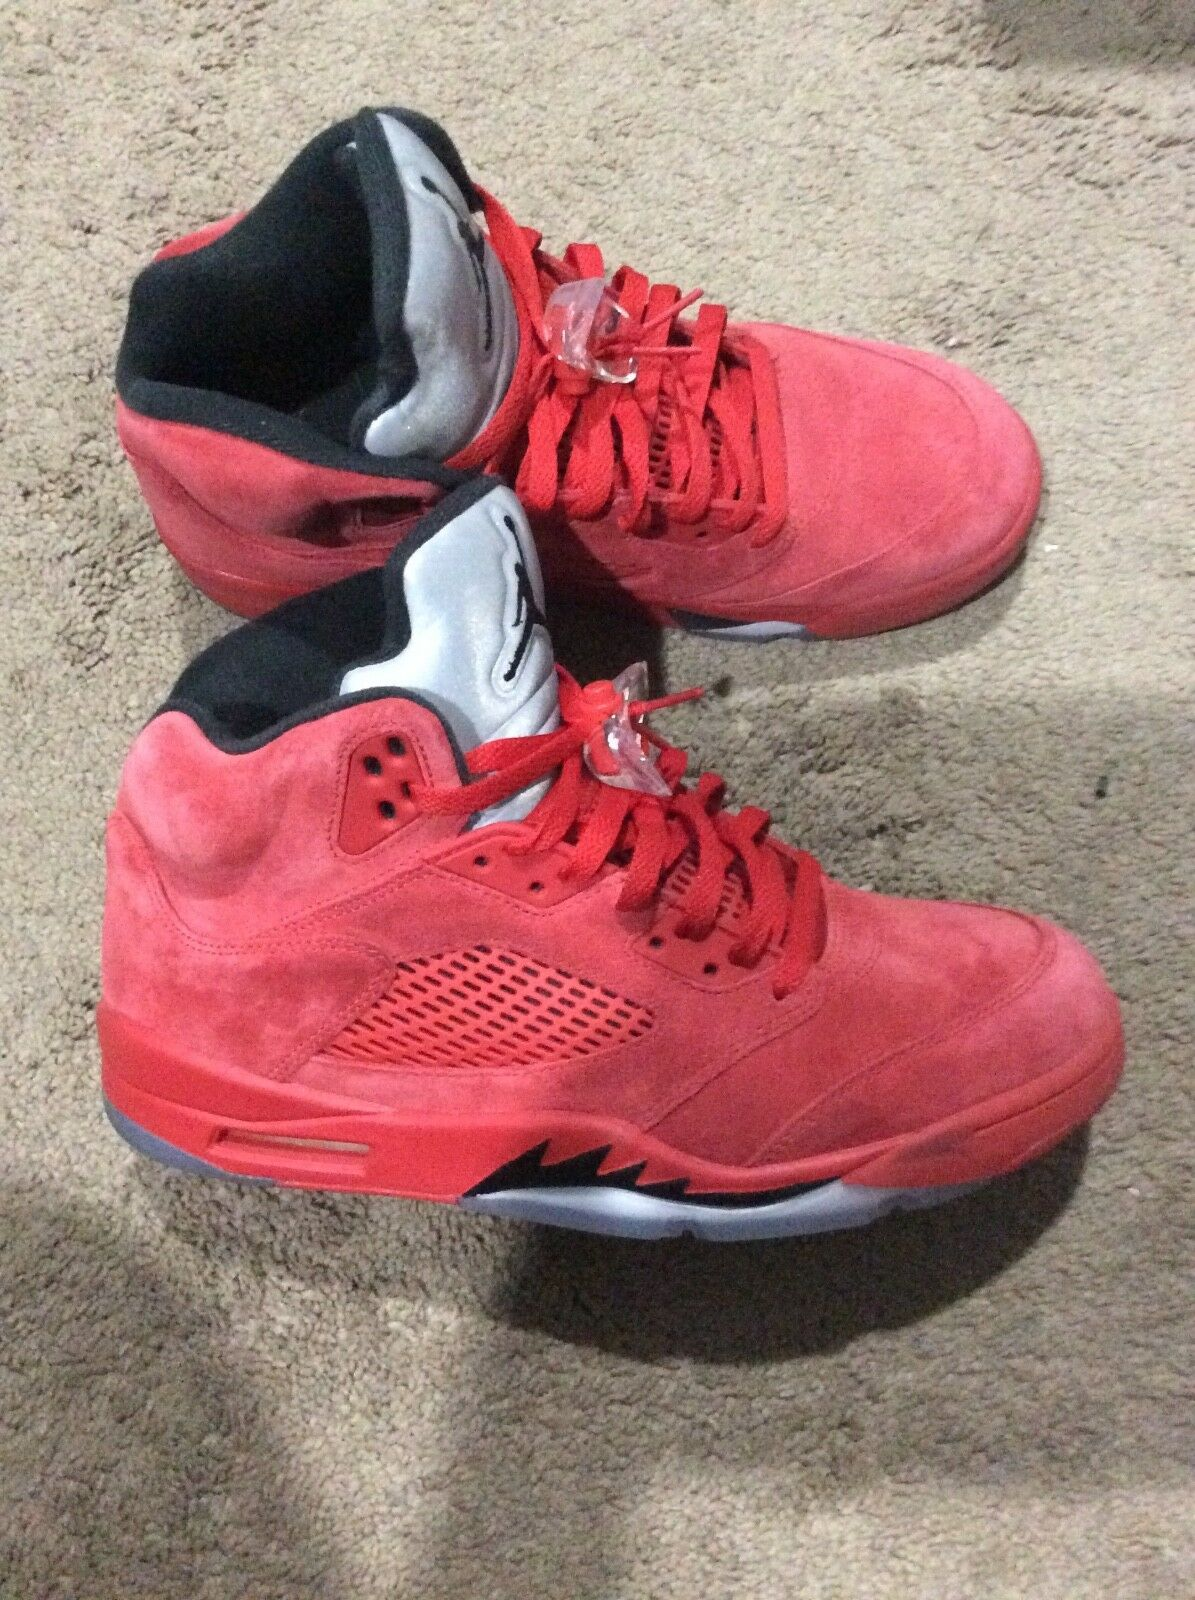 Mens Air Jordan 5 Retro Red Suede & Wolf Grey University Red Brand New Size 11